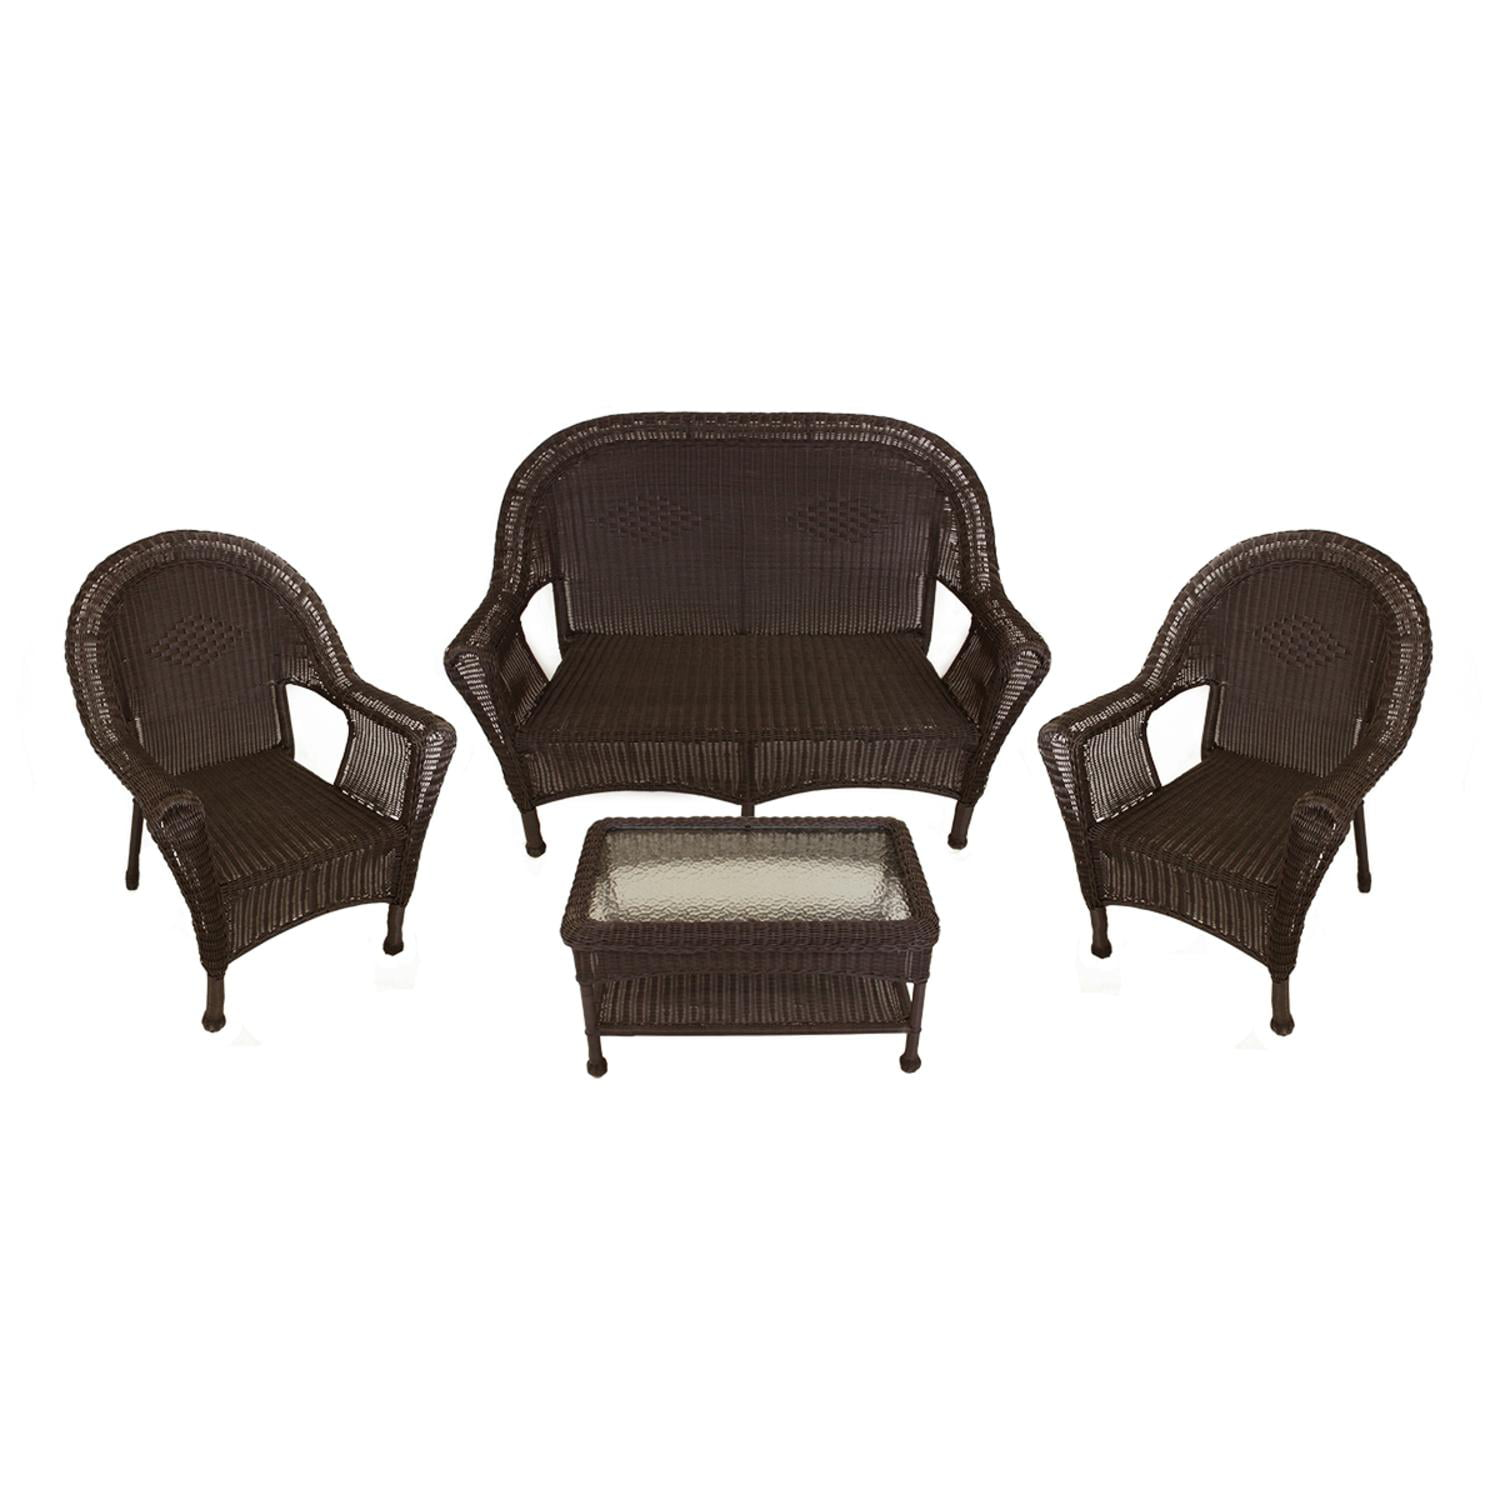 4-Piece Brown Resin Wicker Patio Furniture Set- 2 Chairs Loveseat & Table by Resin Furniture